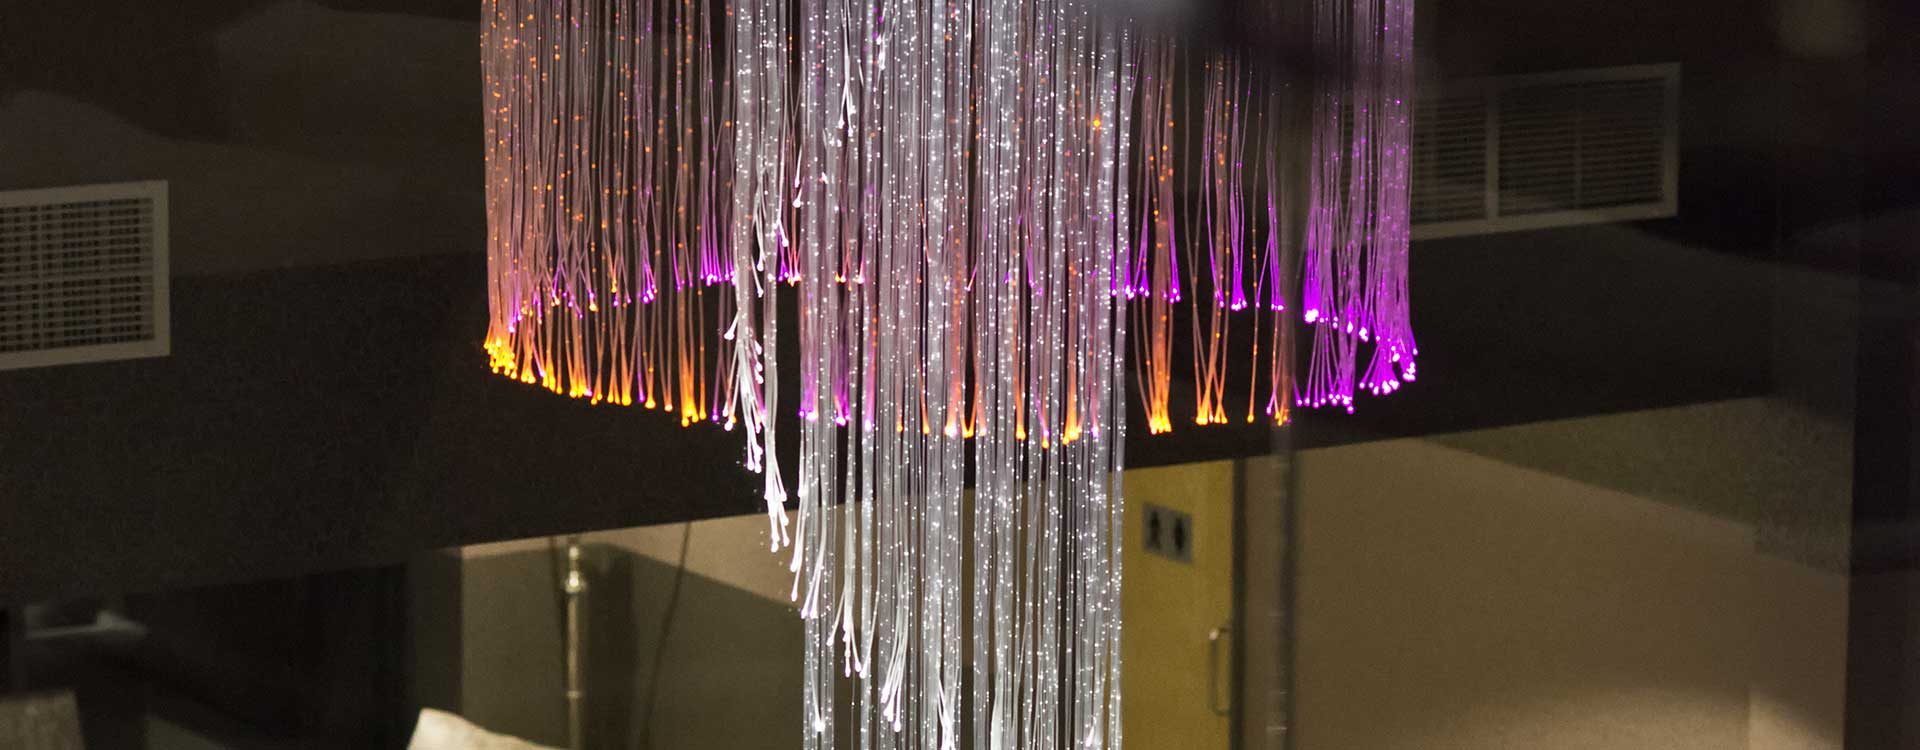 fibre optic chandelier in the inflite jet centre